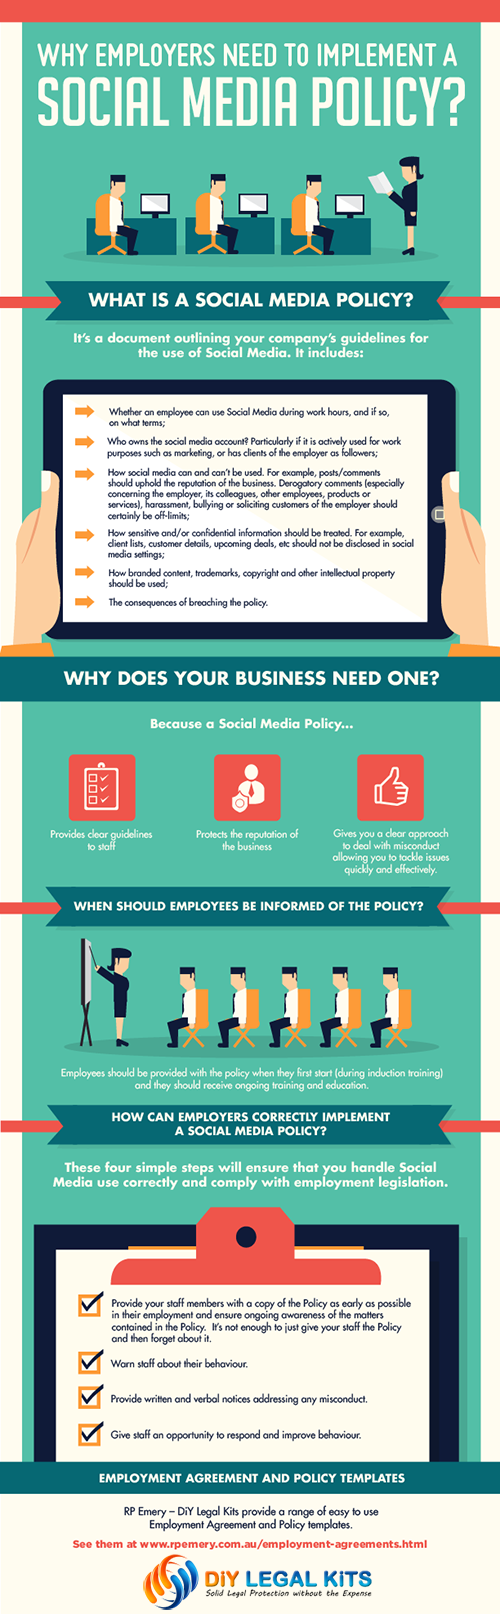 Social Media Policy Infographic - Click to see larger